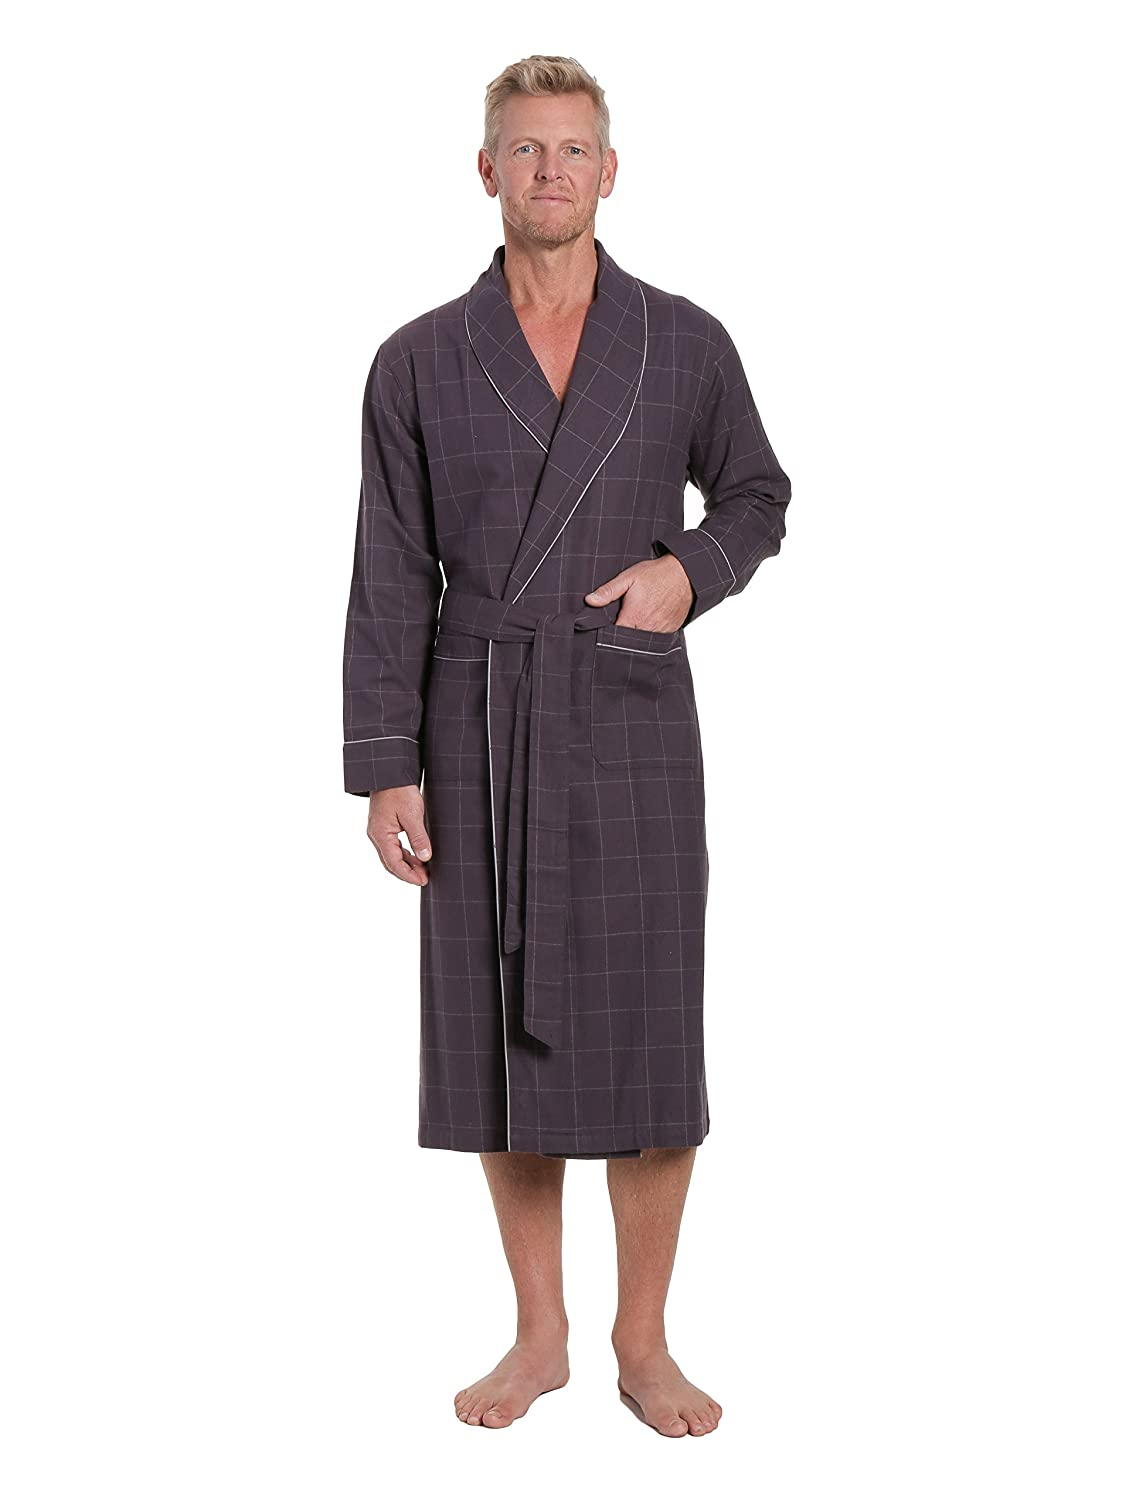 Noble Mount Mens Premium 100% Cotton Flannel Robe